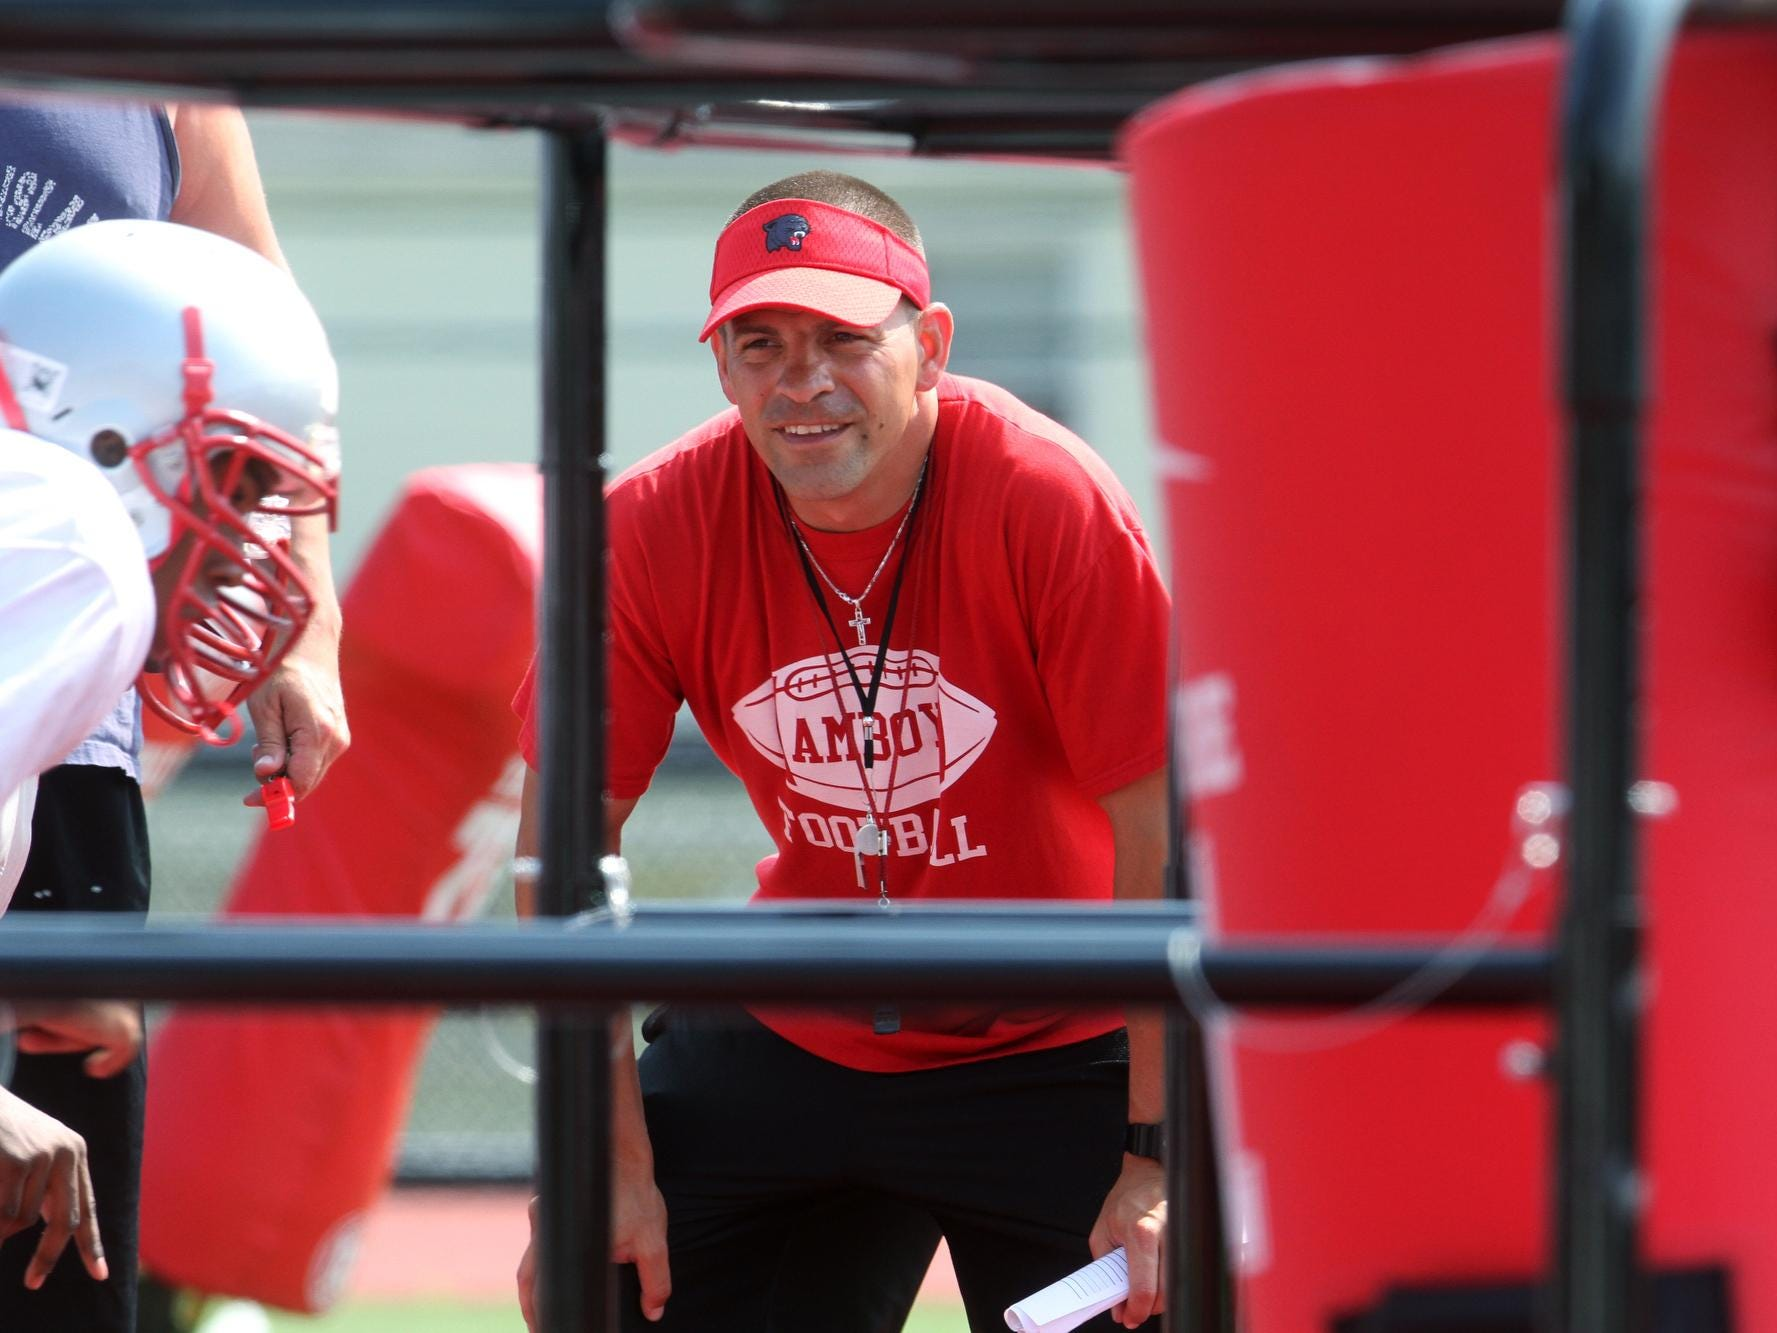 Perth Amboy first year football coach Brad Bishop works with his players during preseason practice, Wednesday, August 20, 2014, in Perth Amboy, NJ. Photo by Jason Towlen